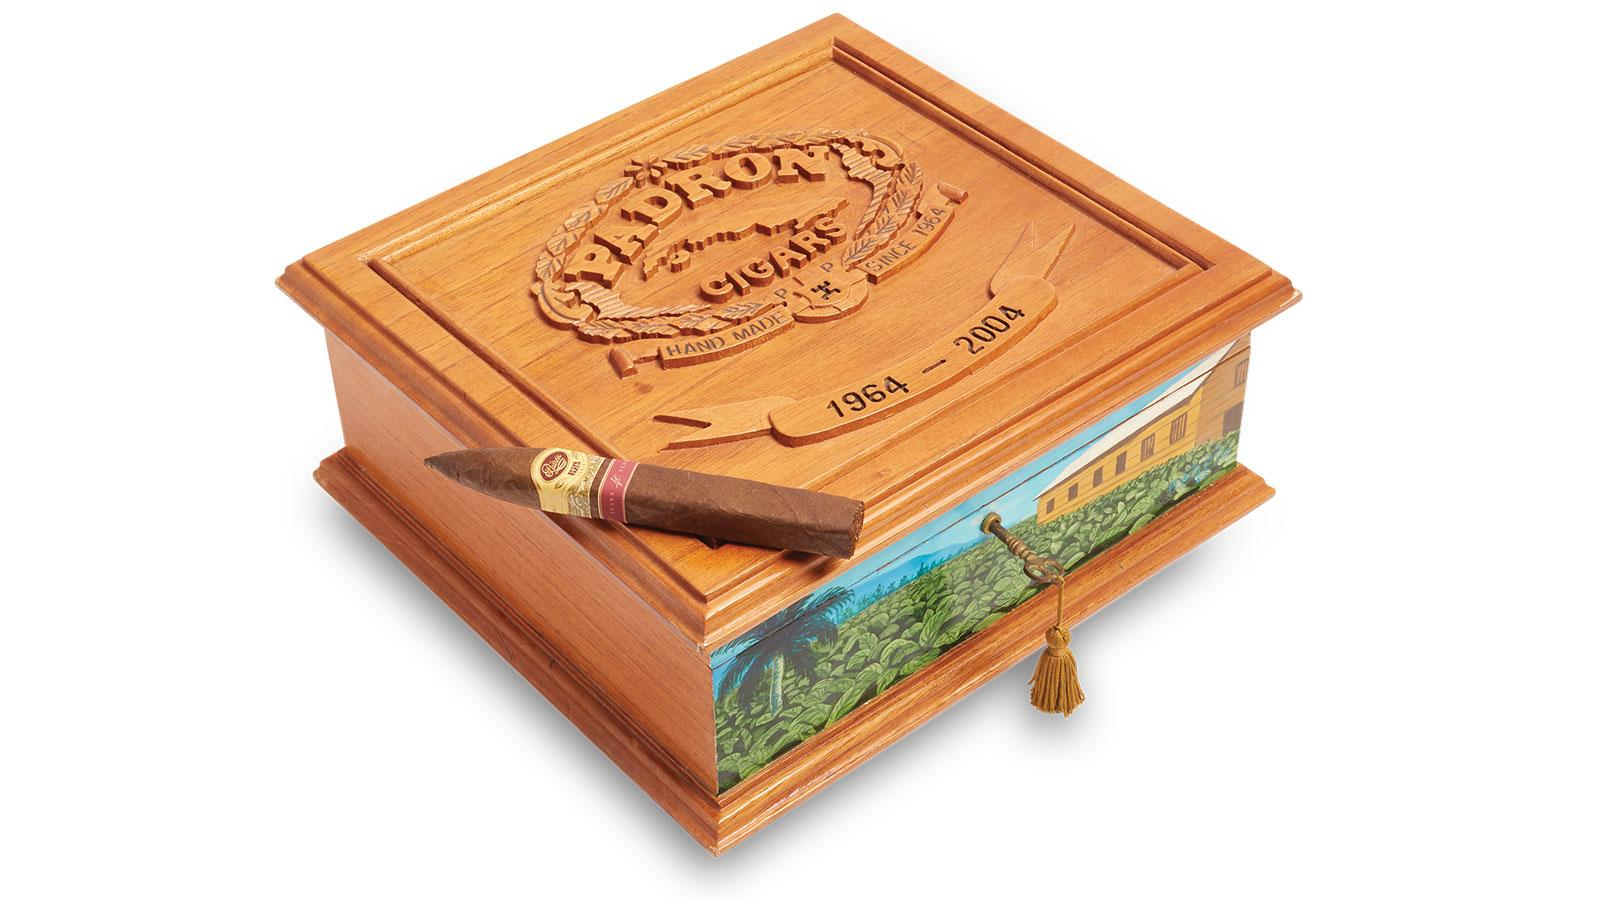 Padrón Serie 1926 40th Anniversary